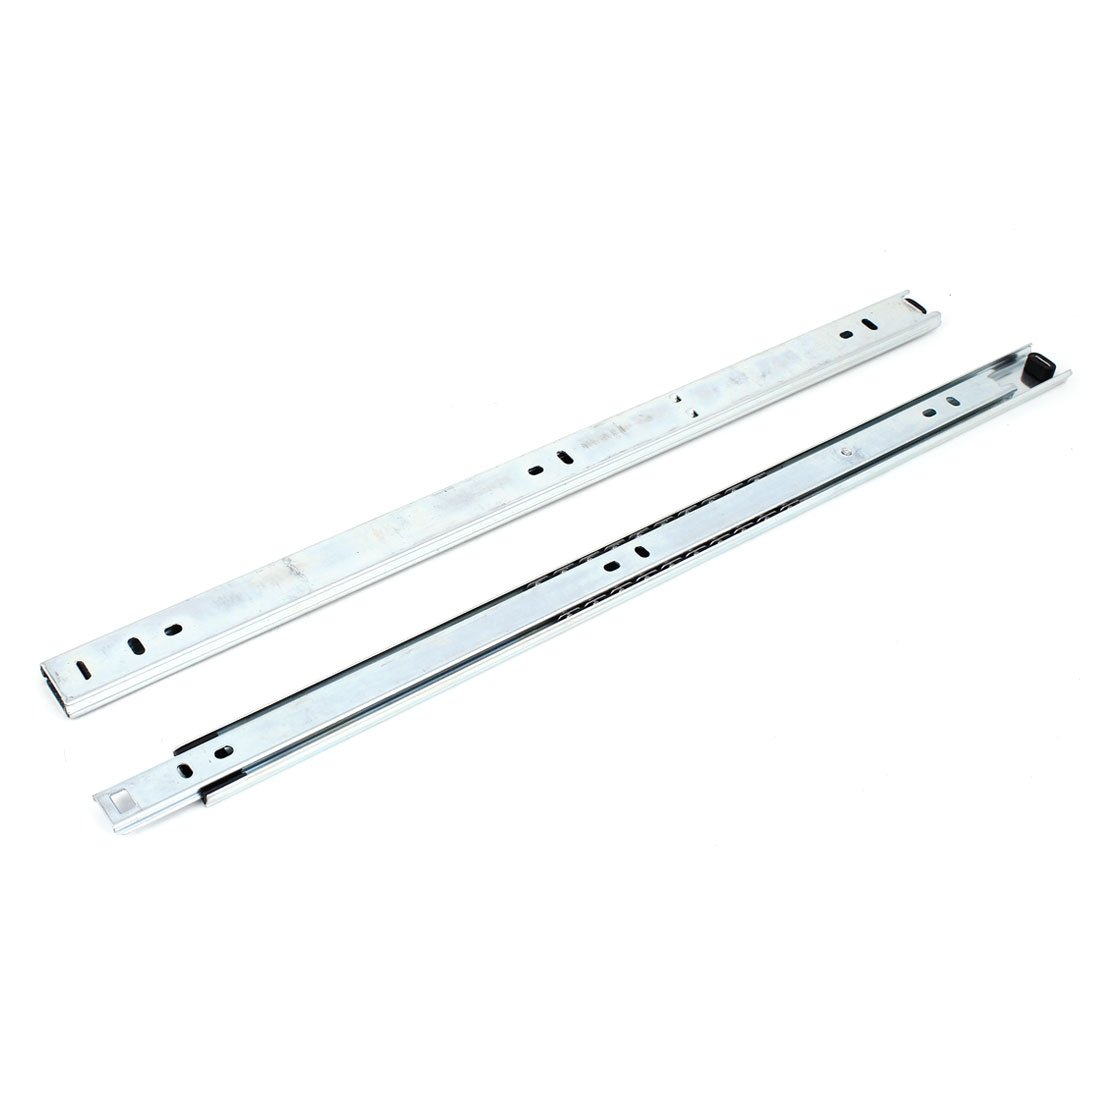 Uxcell a14121600ux0004 17-inch Telescopic Ball Bearing Side Mount Drawer Slides Runners Rails Pair